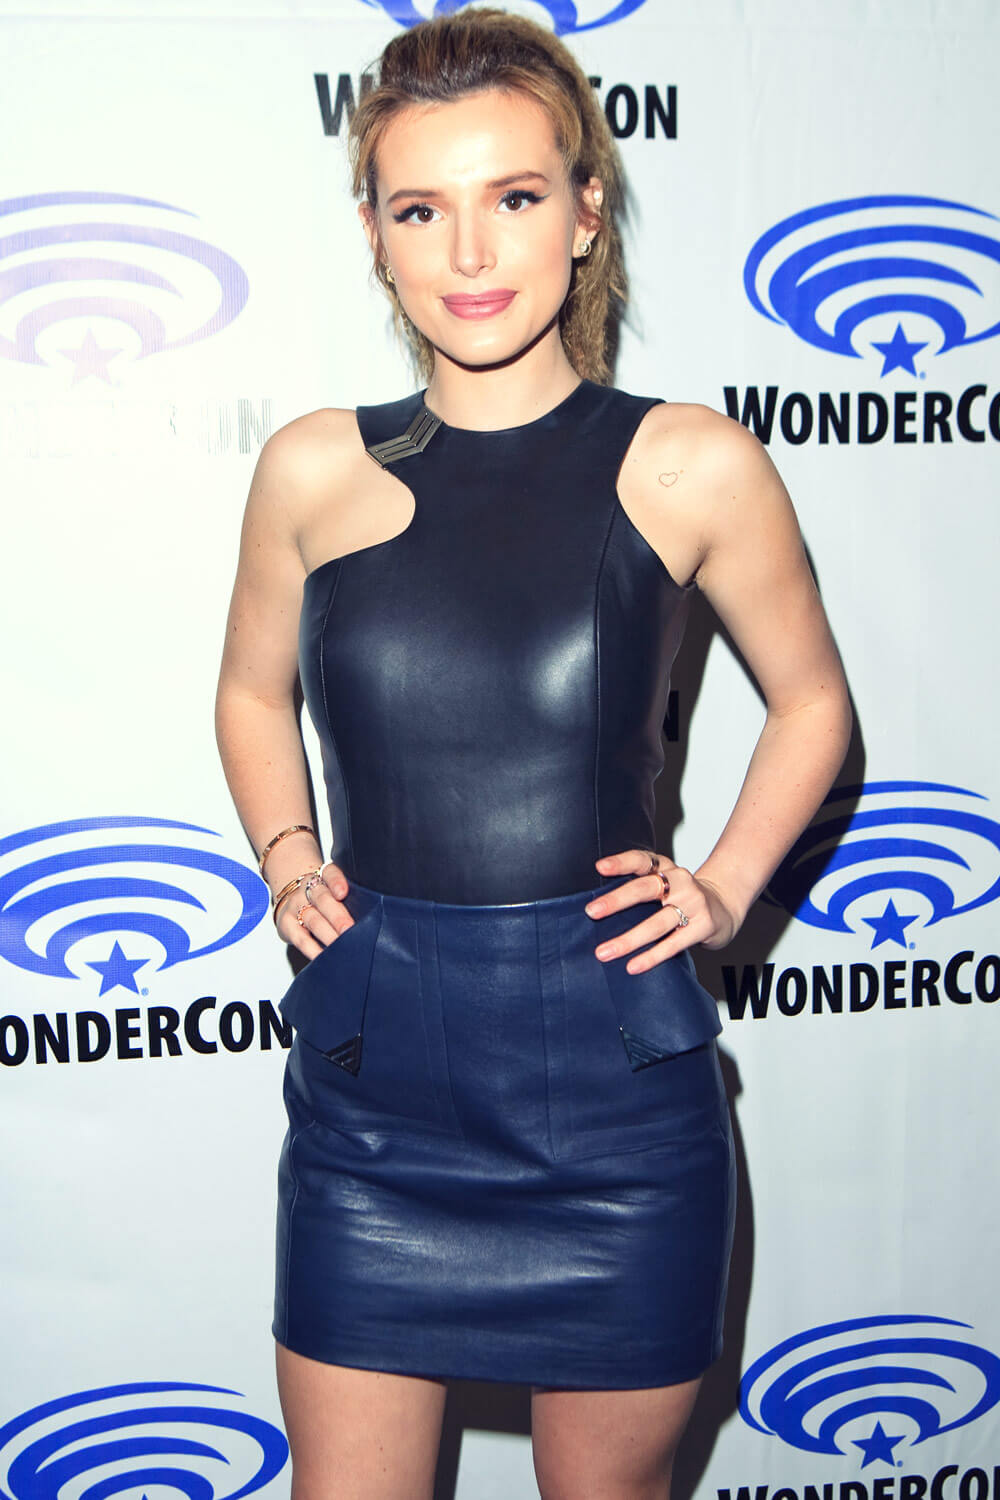 Bella Thorne attends Ratchet & Clank WonderCon Presentation